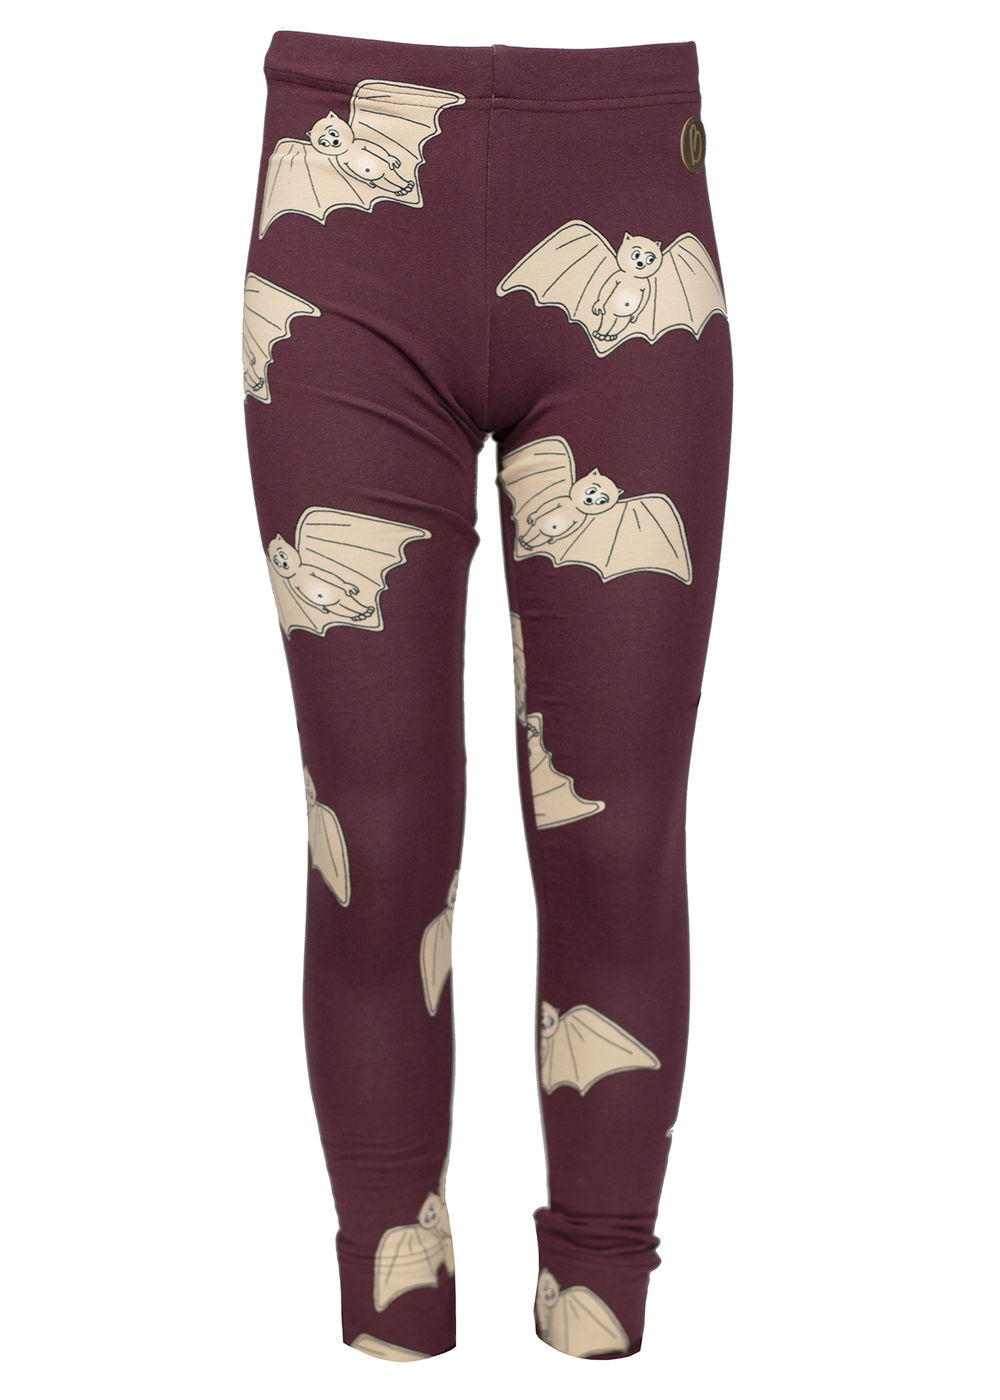 PARIS Collegeleggingsit, Bat Chocolate